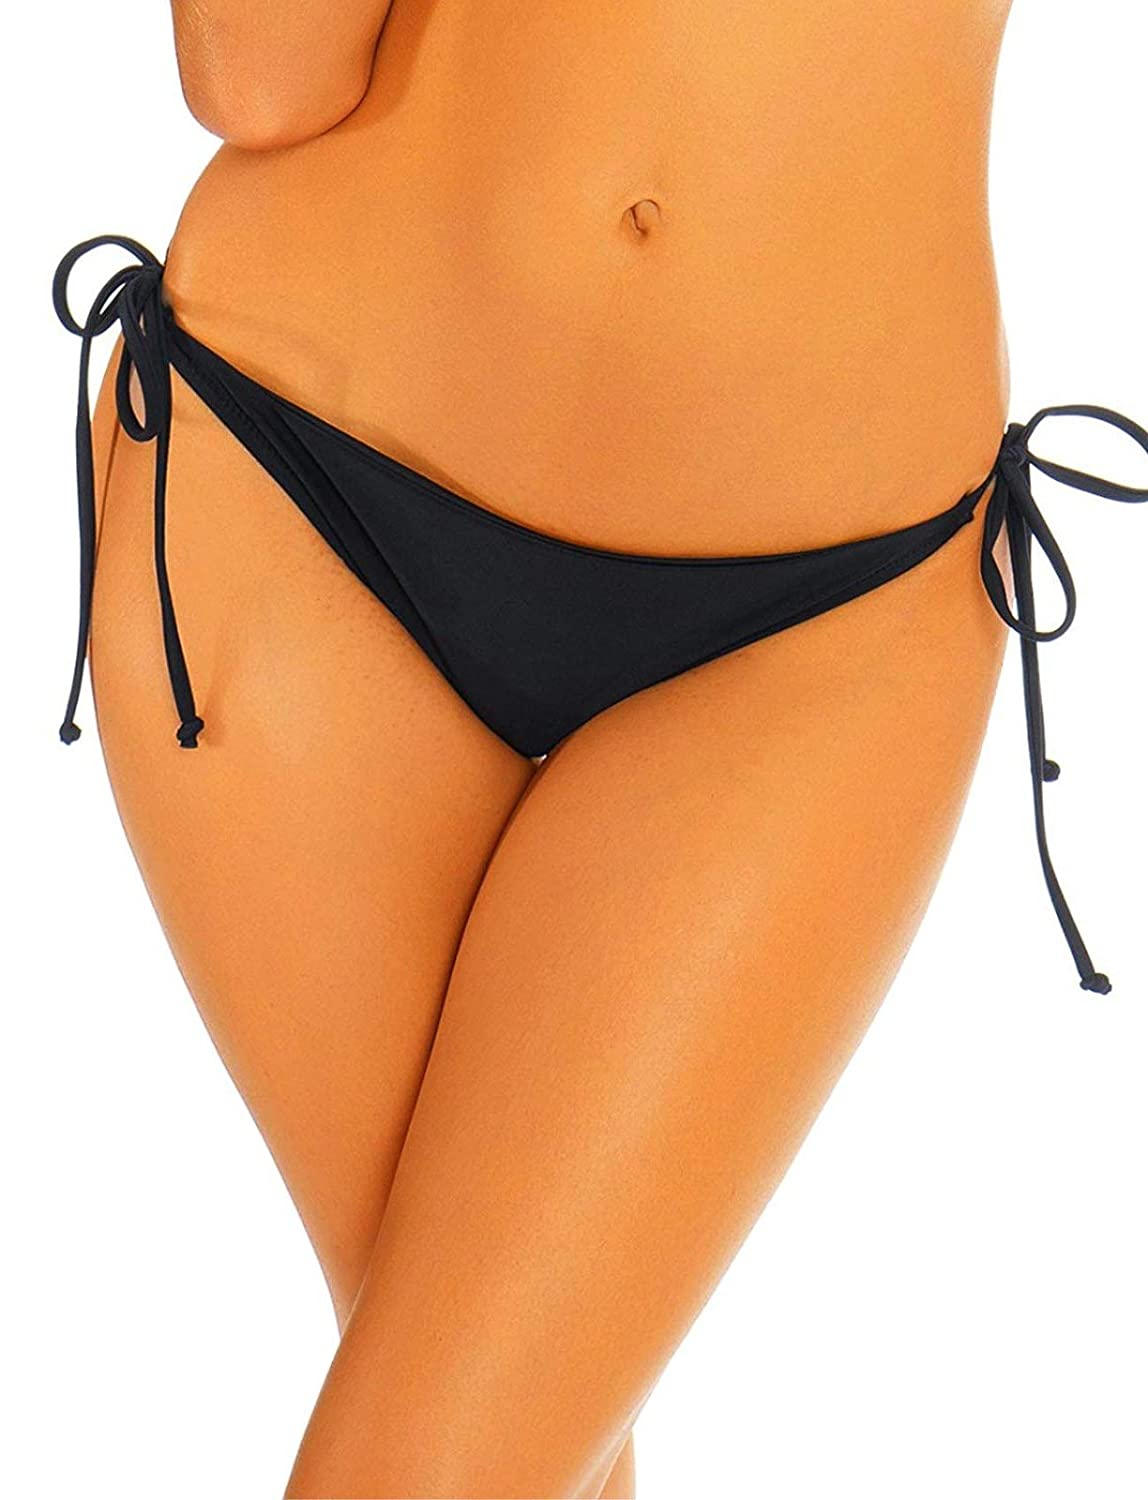 fd1c6a3a44eb Features: Minimal Coverage Fully lined; Low Rise Front With sides ties; Ruched back cheeky minimal coverage show your waist curve and butt.